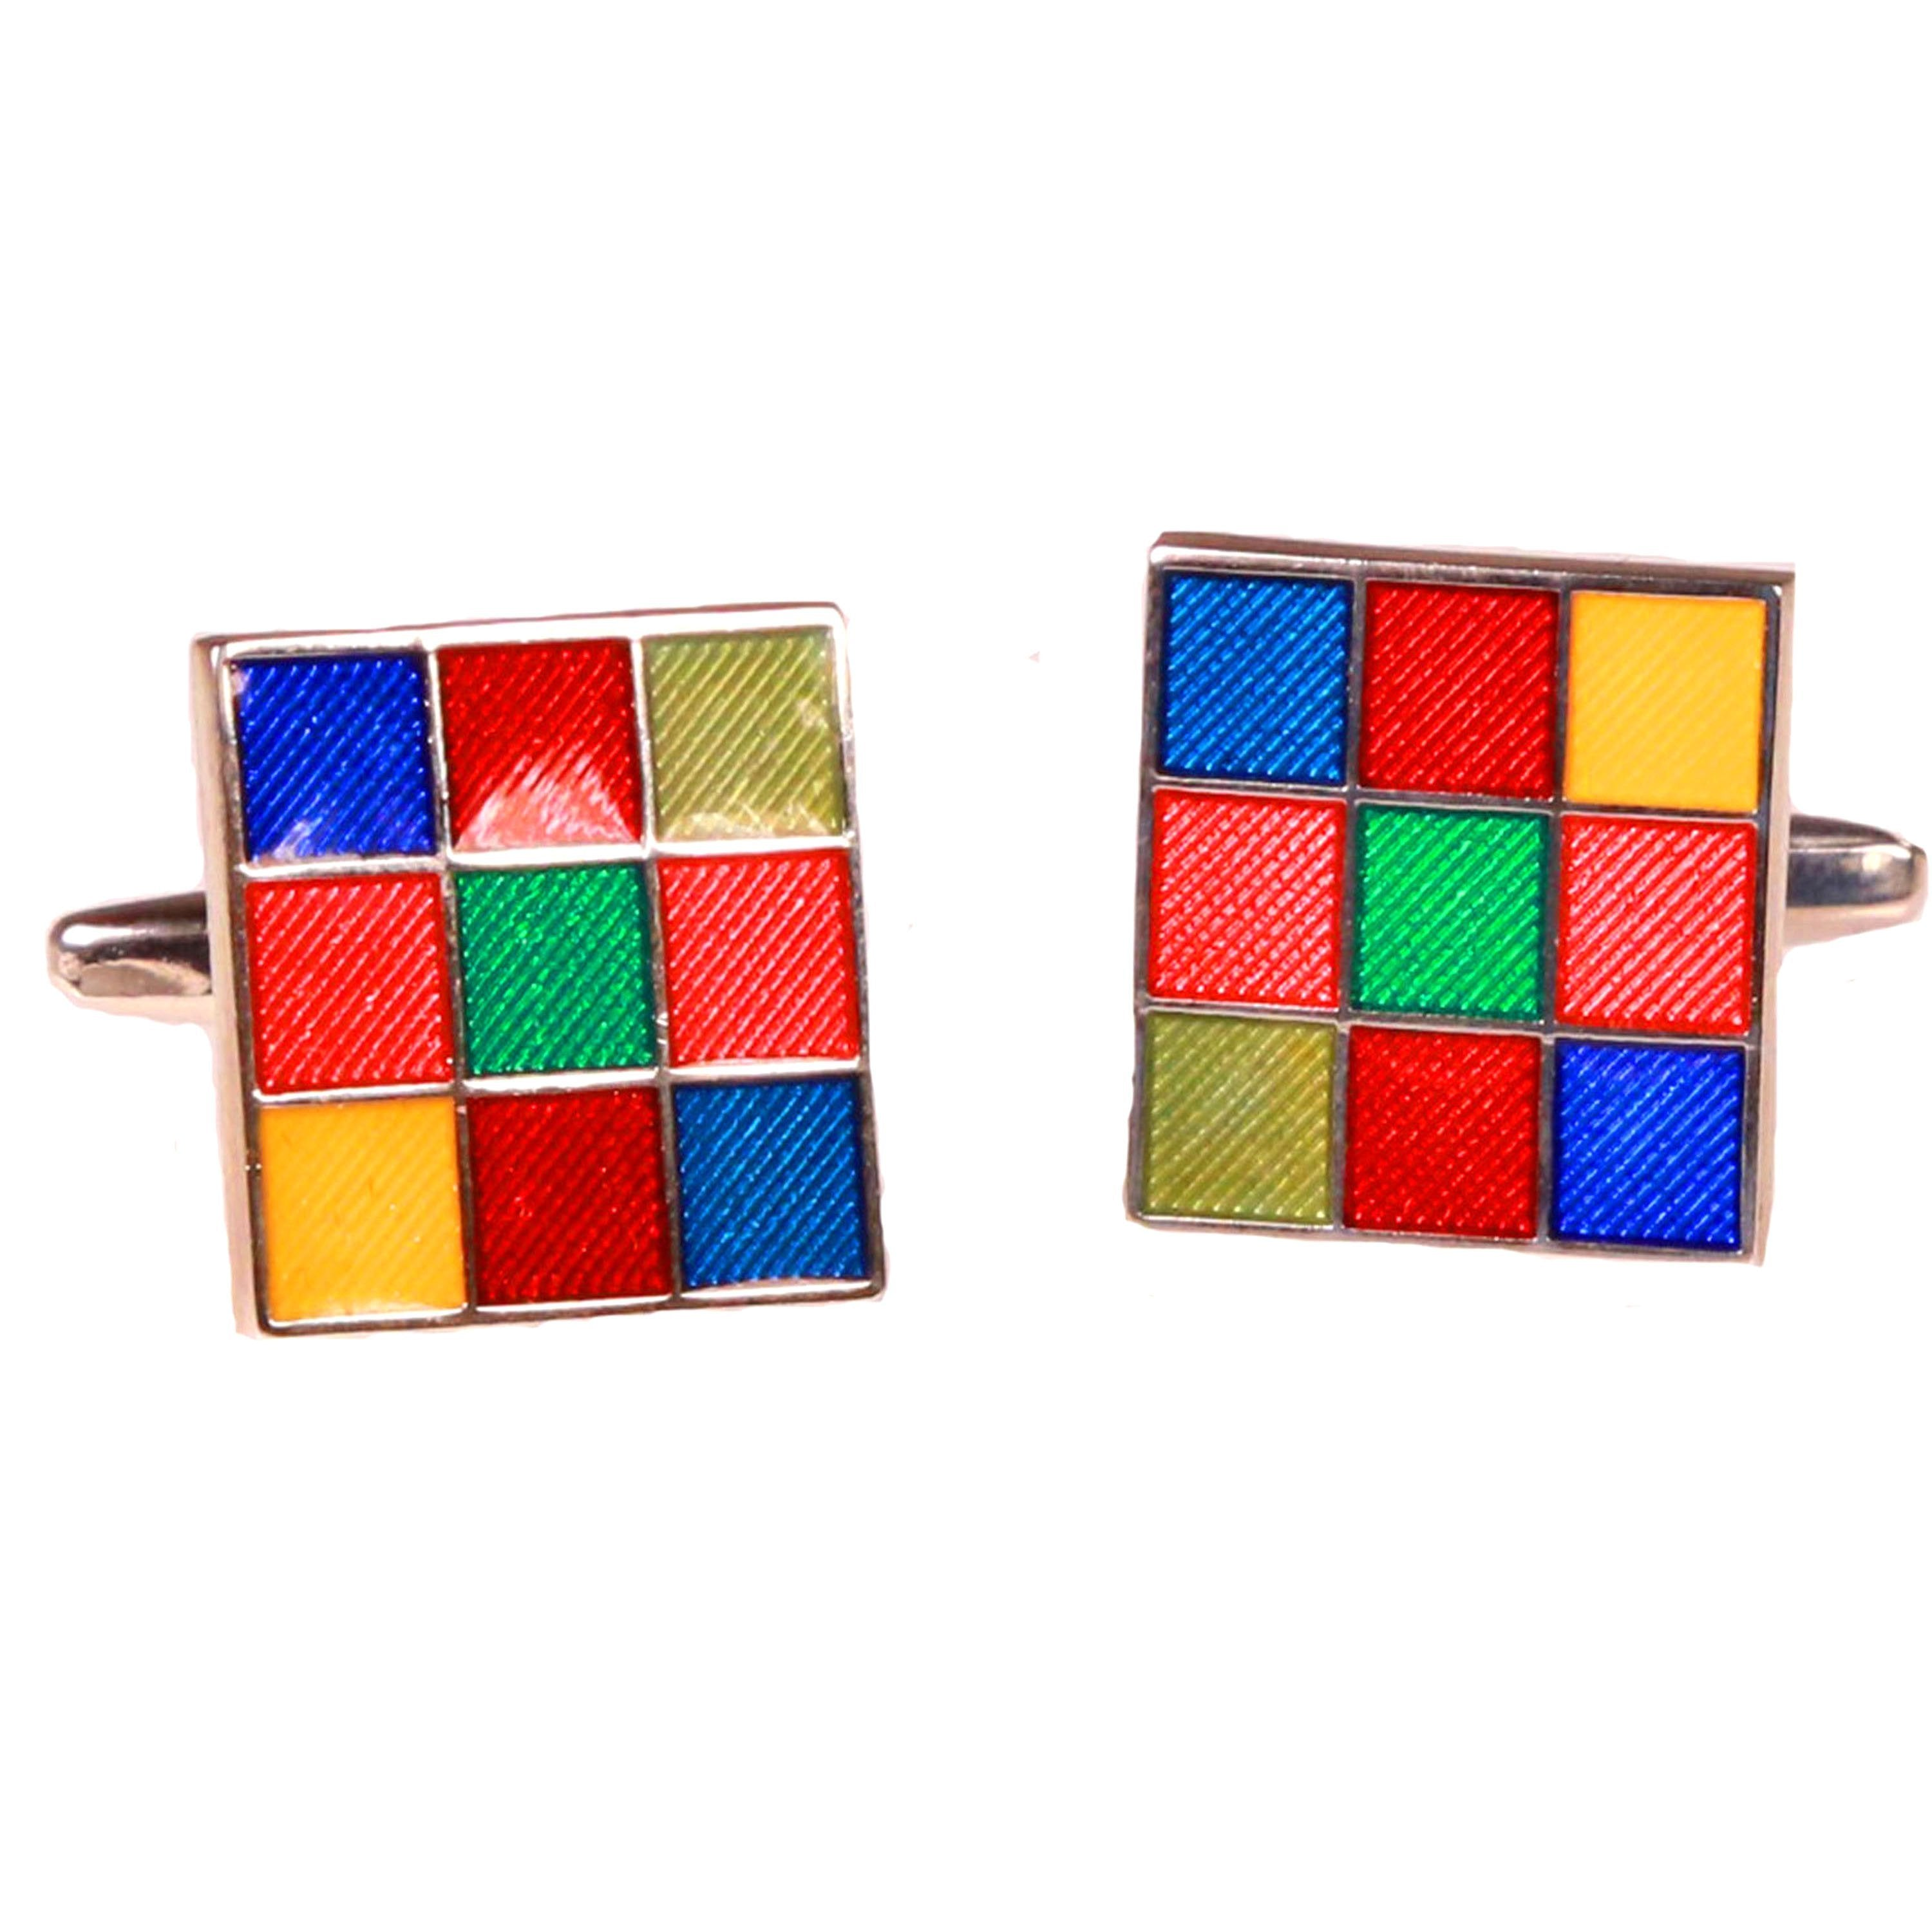 Silvertone Square Multicolor Cufflinks with Jewelry Box - Giorgio's Menswear